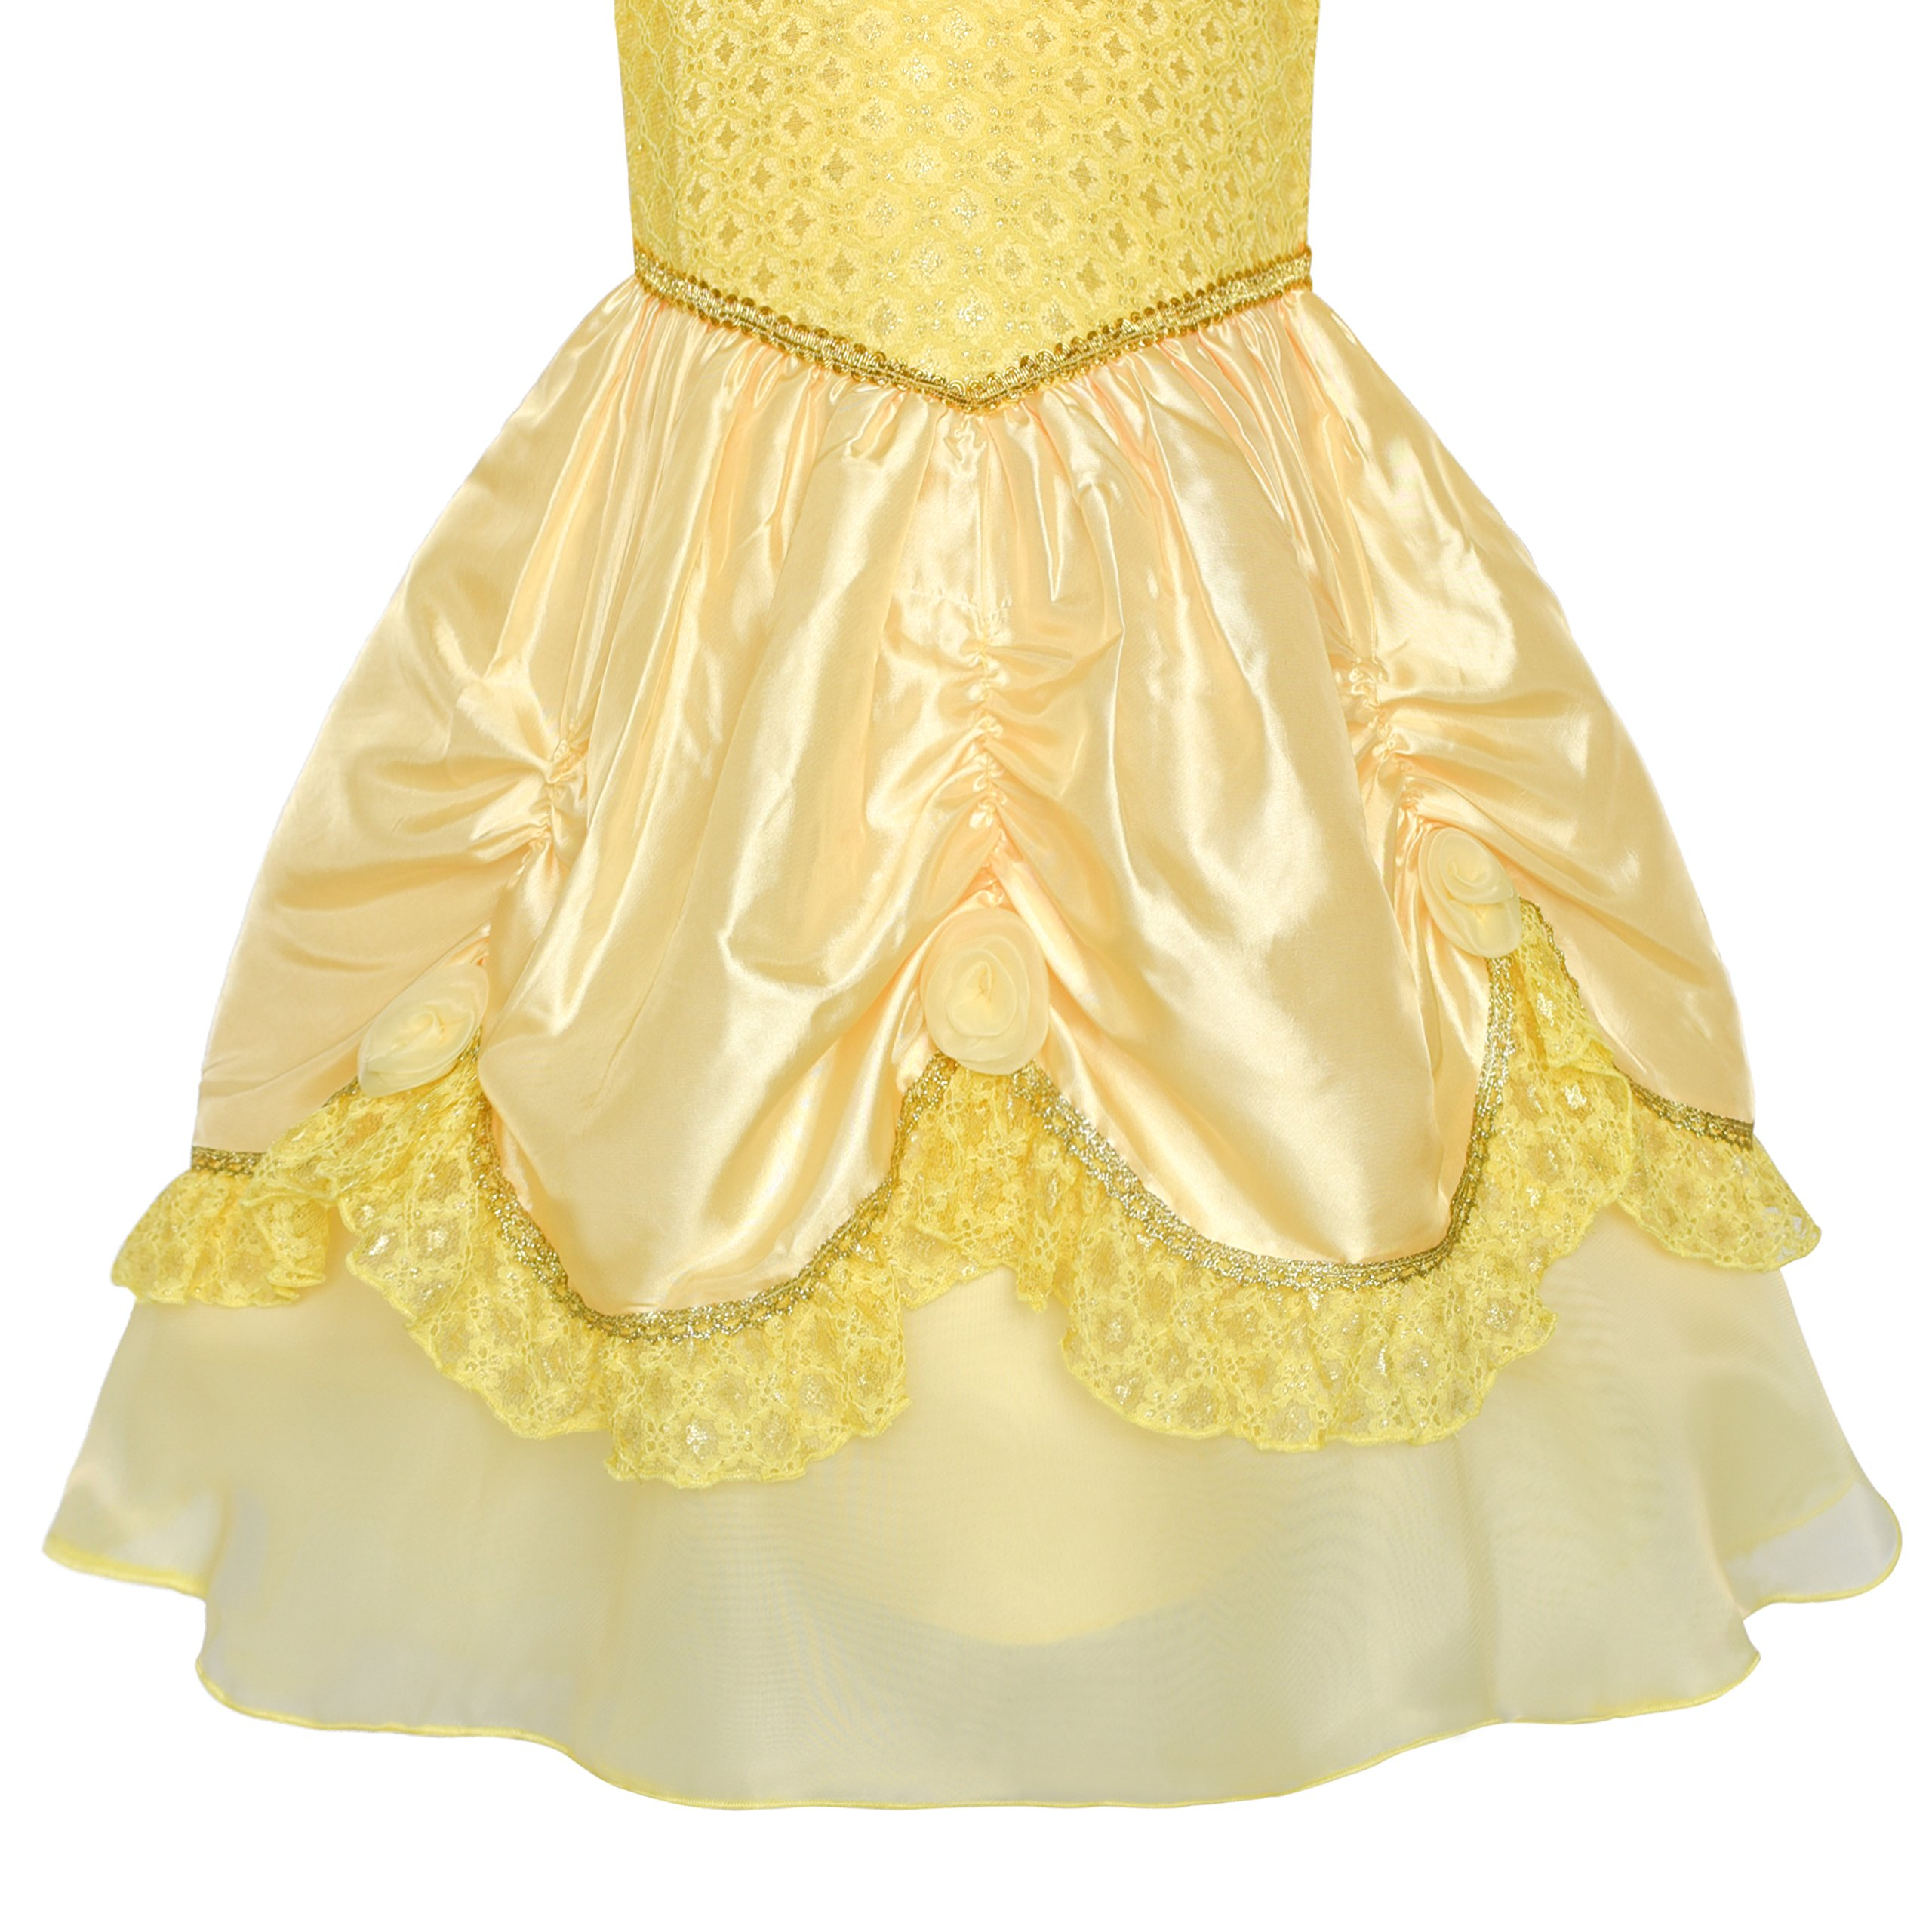 Girls Dress Yellow Princess Belle Costume Birthday Party Size 6 by Sunny Fashion (Image #4)